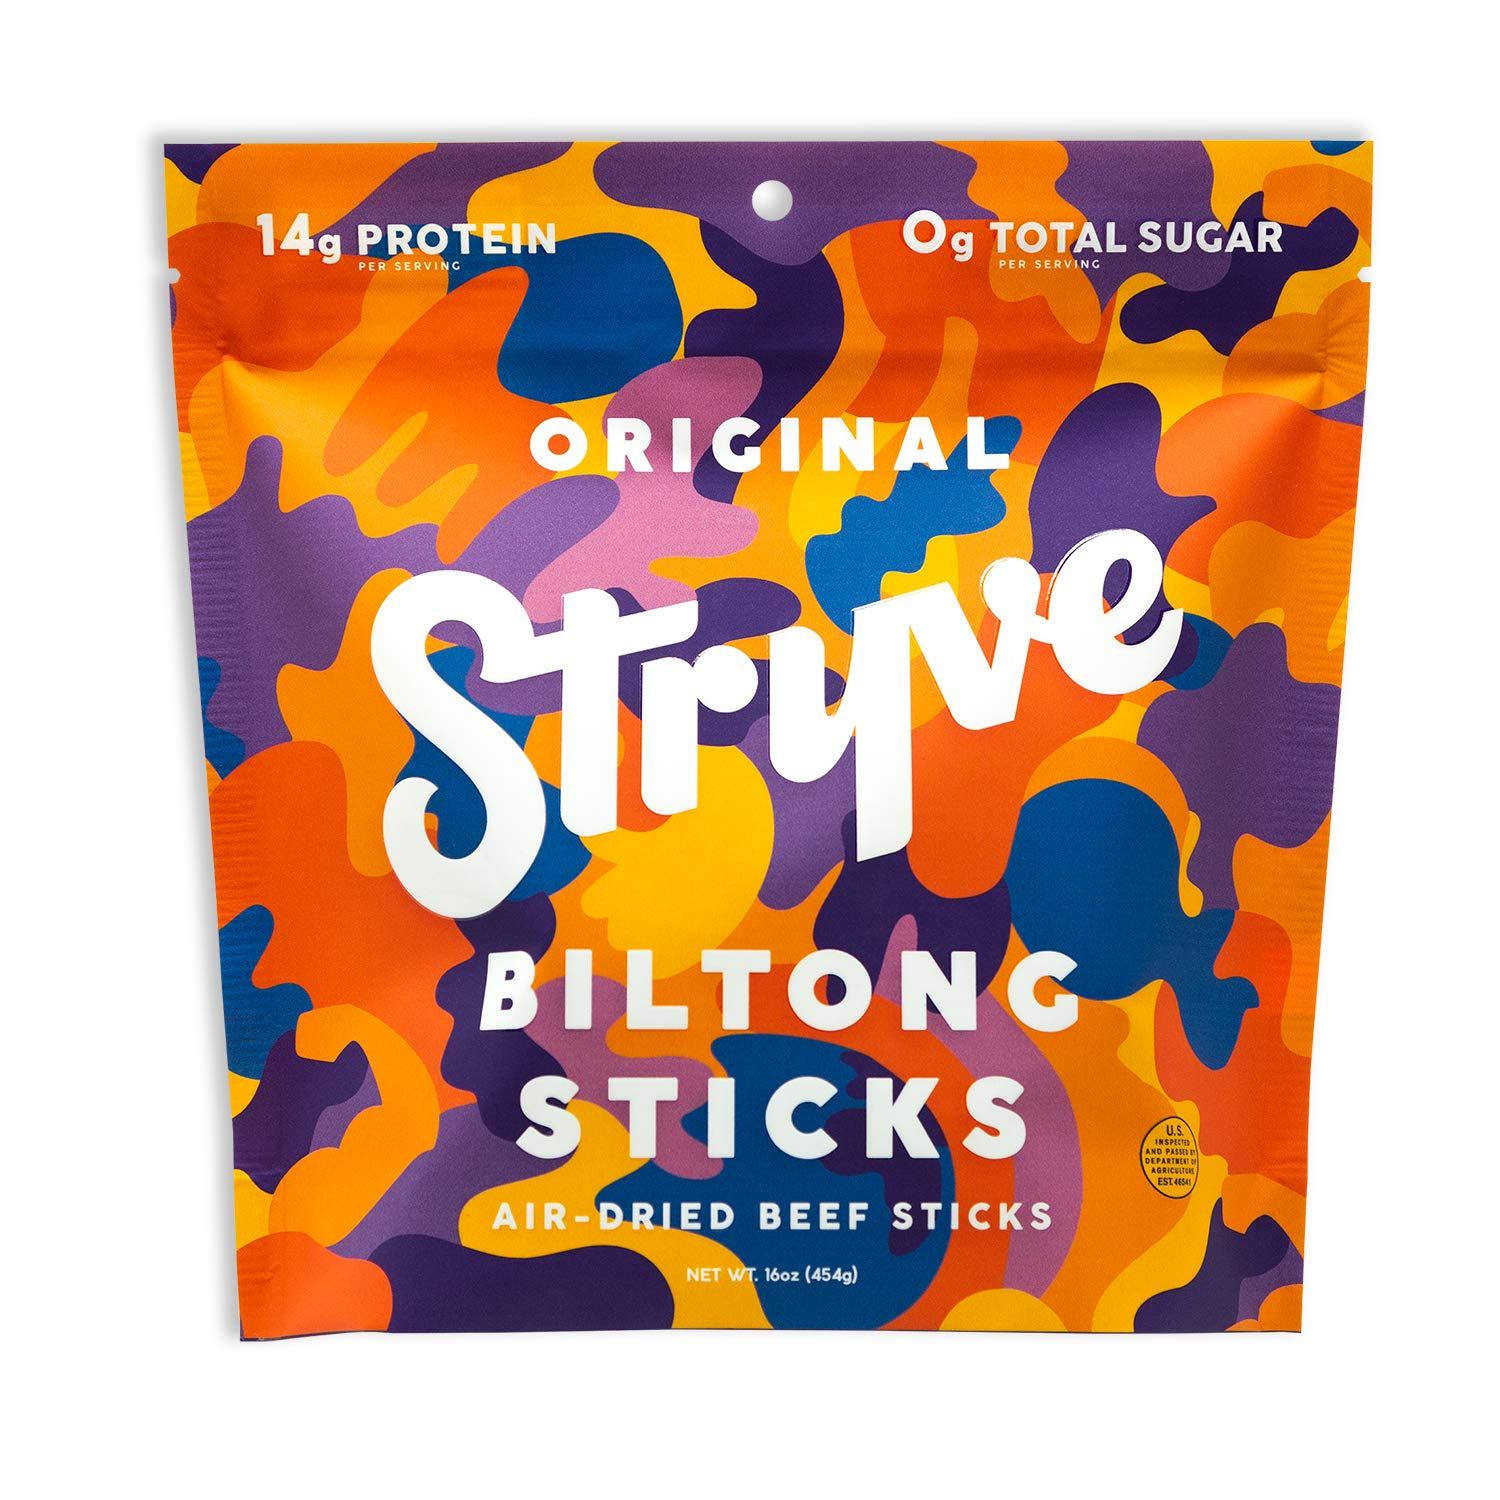 Stryve Mini Snack Beef Sticks. 14g Protein, Sugar Free, No Carbs, Gluten Free, No Nitrates, No MSG, No Preservatives. Keto and Paleo Friendly. Original, 16oz